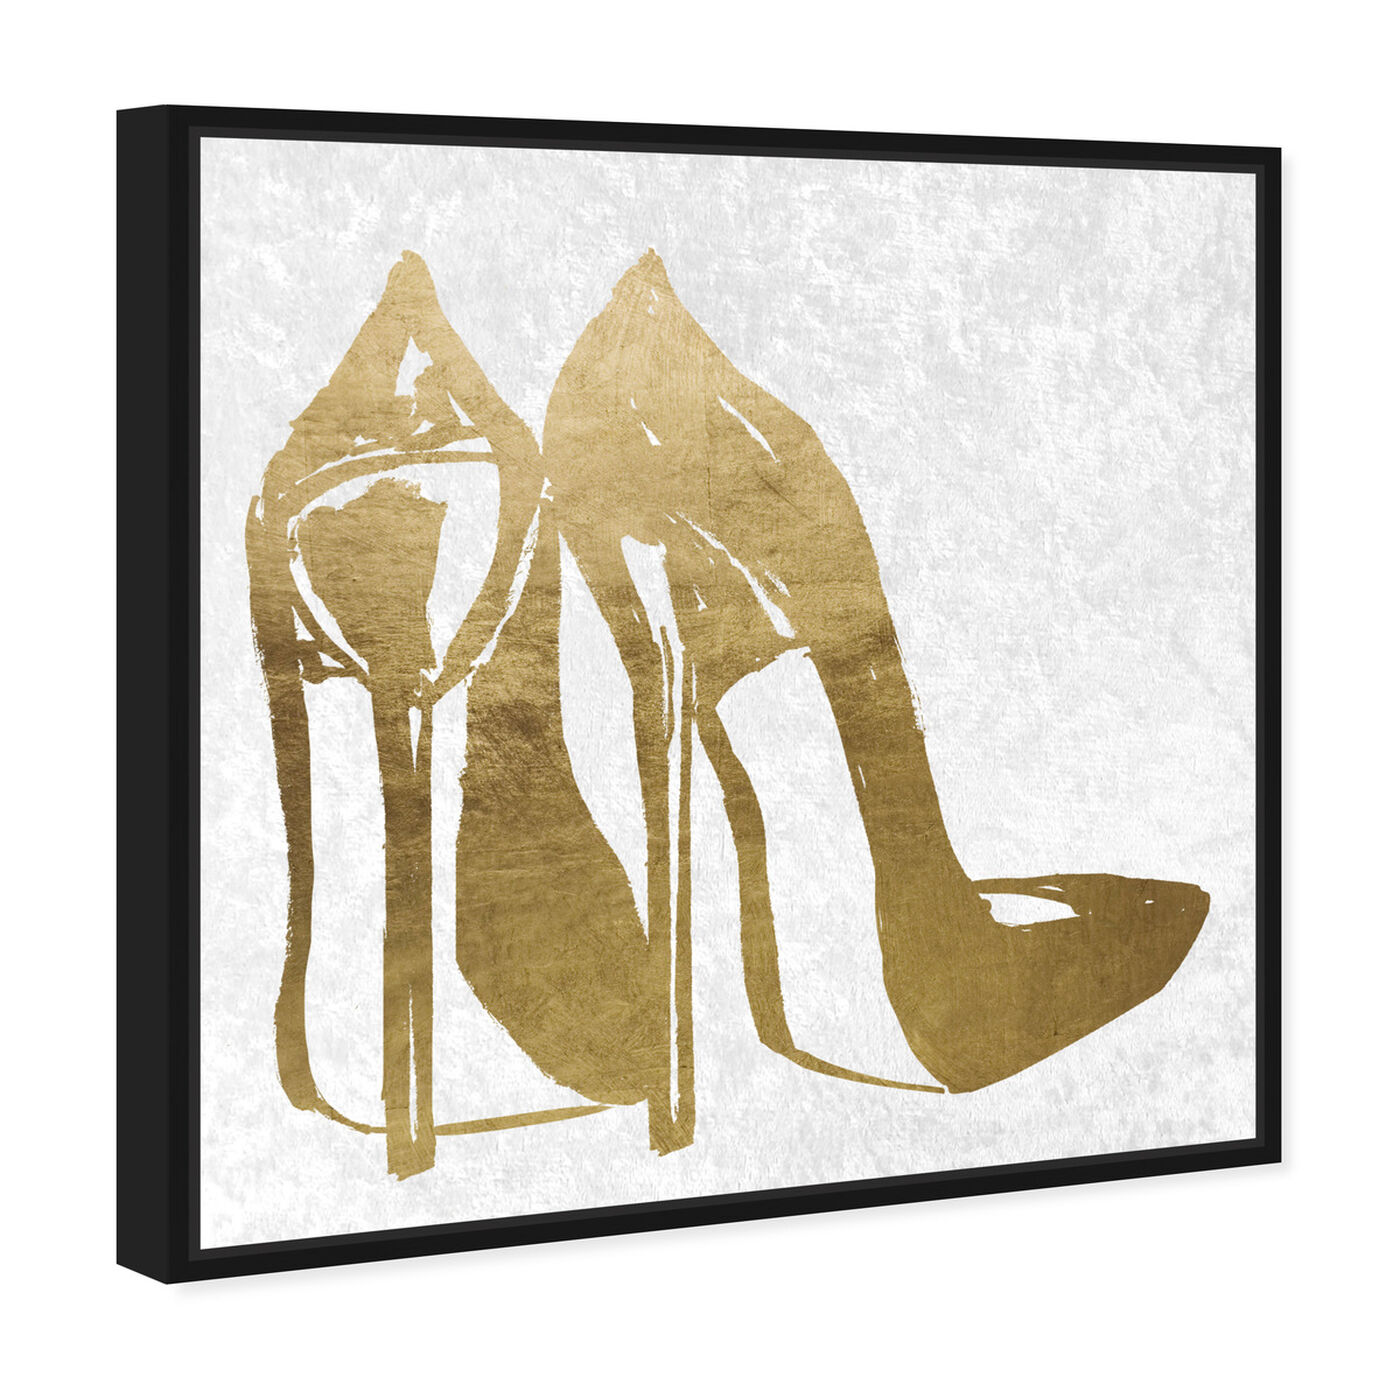 Angled view of Gold and Velvet Heels featuring fashion and glam and shoes art.